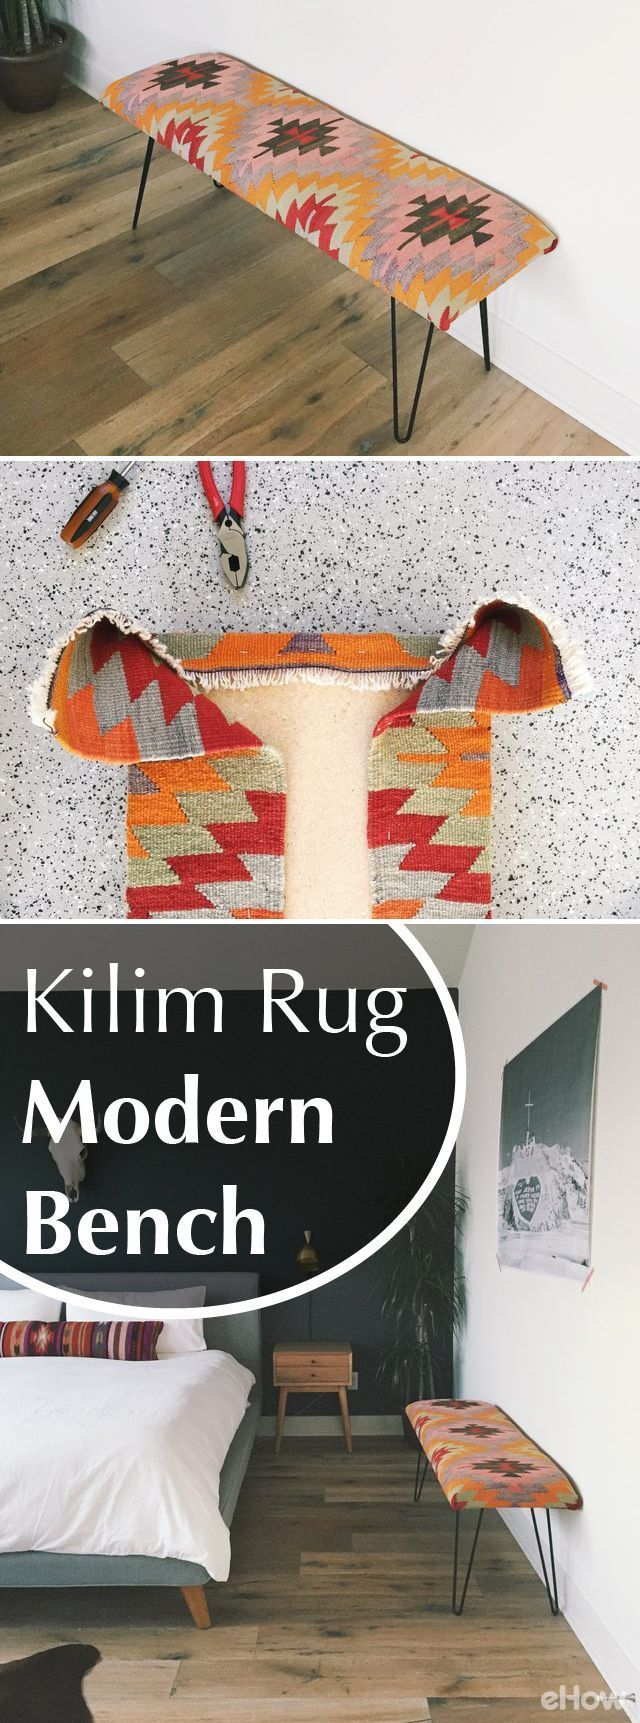 This is a quick and easy DIY for a mid-century modern-style bench using a cheery colored kilim rug! We love the way the vibrant colors of the fabric really brightened up our nearly neutral bedroom, making the bench the perfect statement piece. With less t